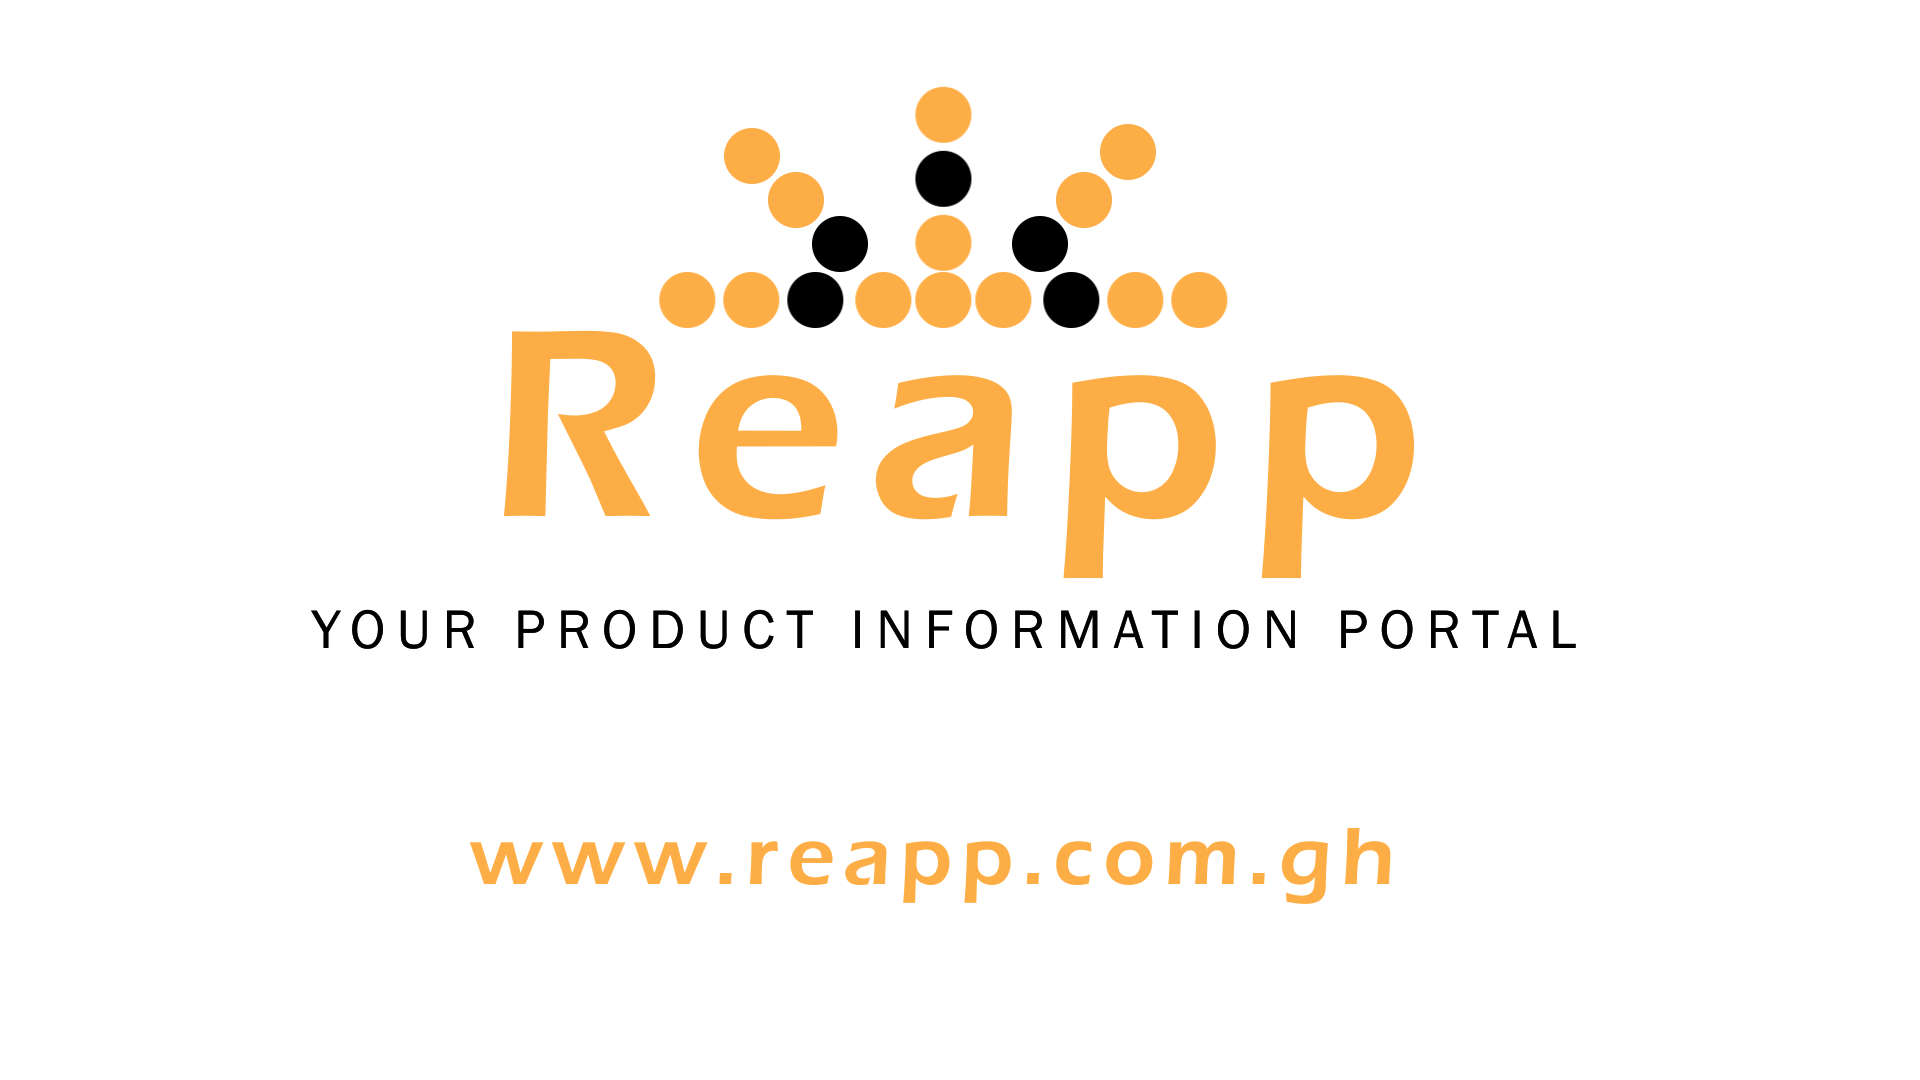 Reapp, your product information portal